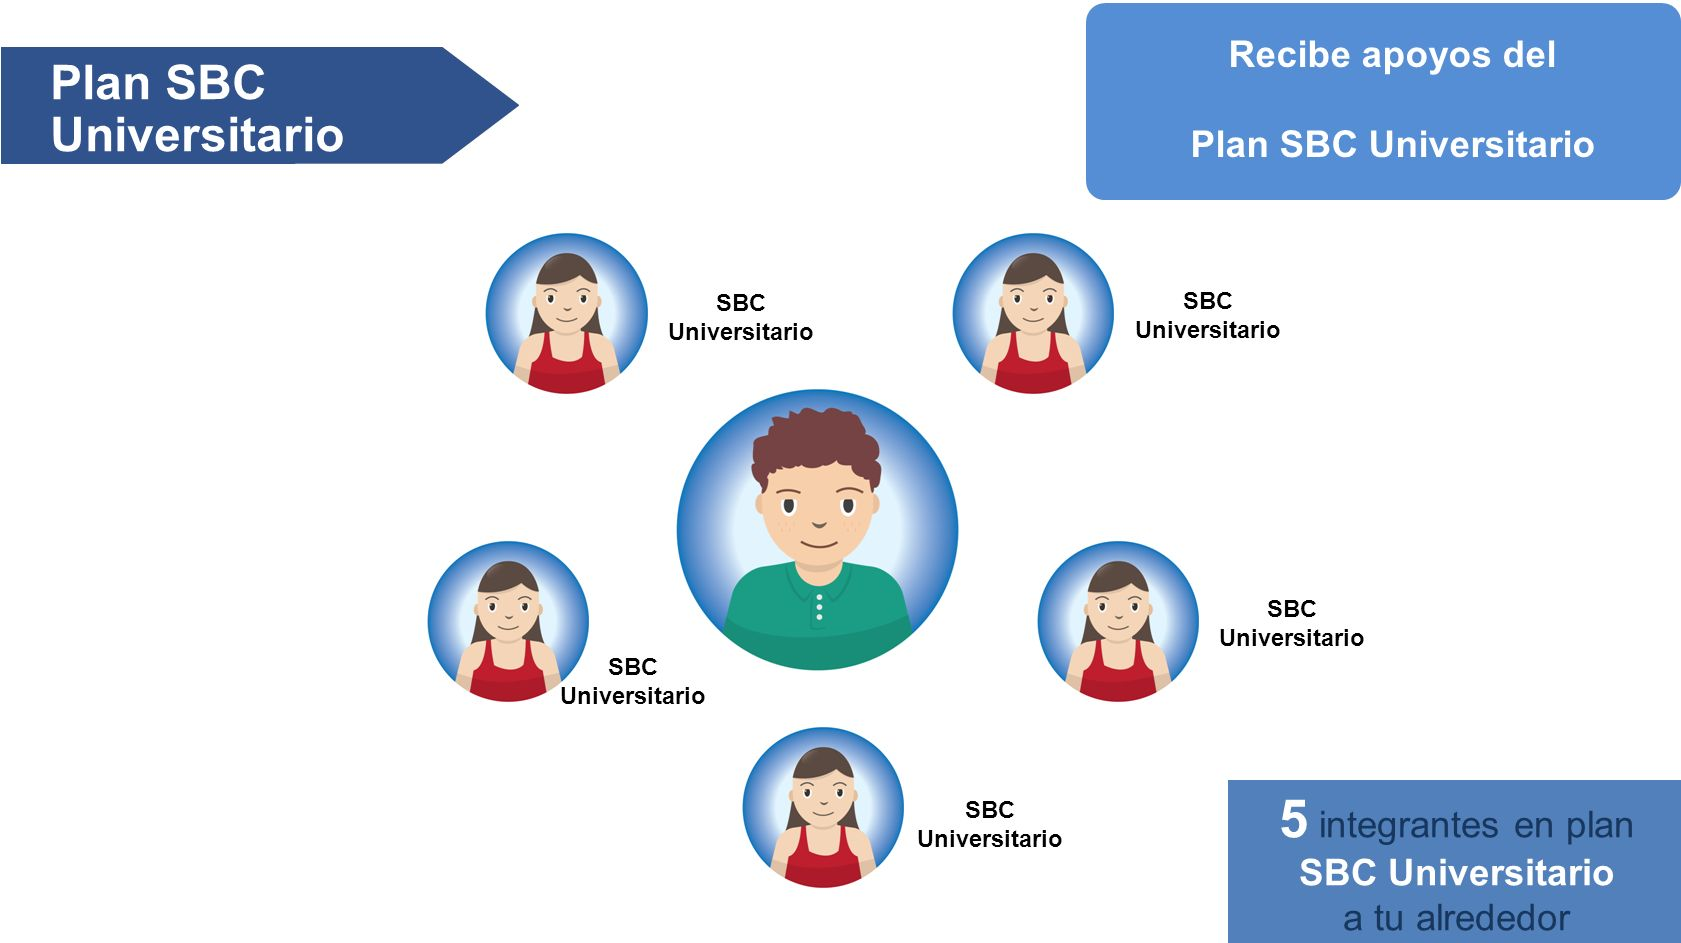 Plan SBC Universitario SBC Universitario 5 integrantes en plan SBC Universitario a tu alrededor Recibe apoyos del Plan SBC Universitario